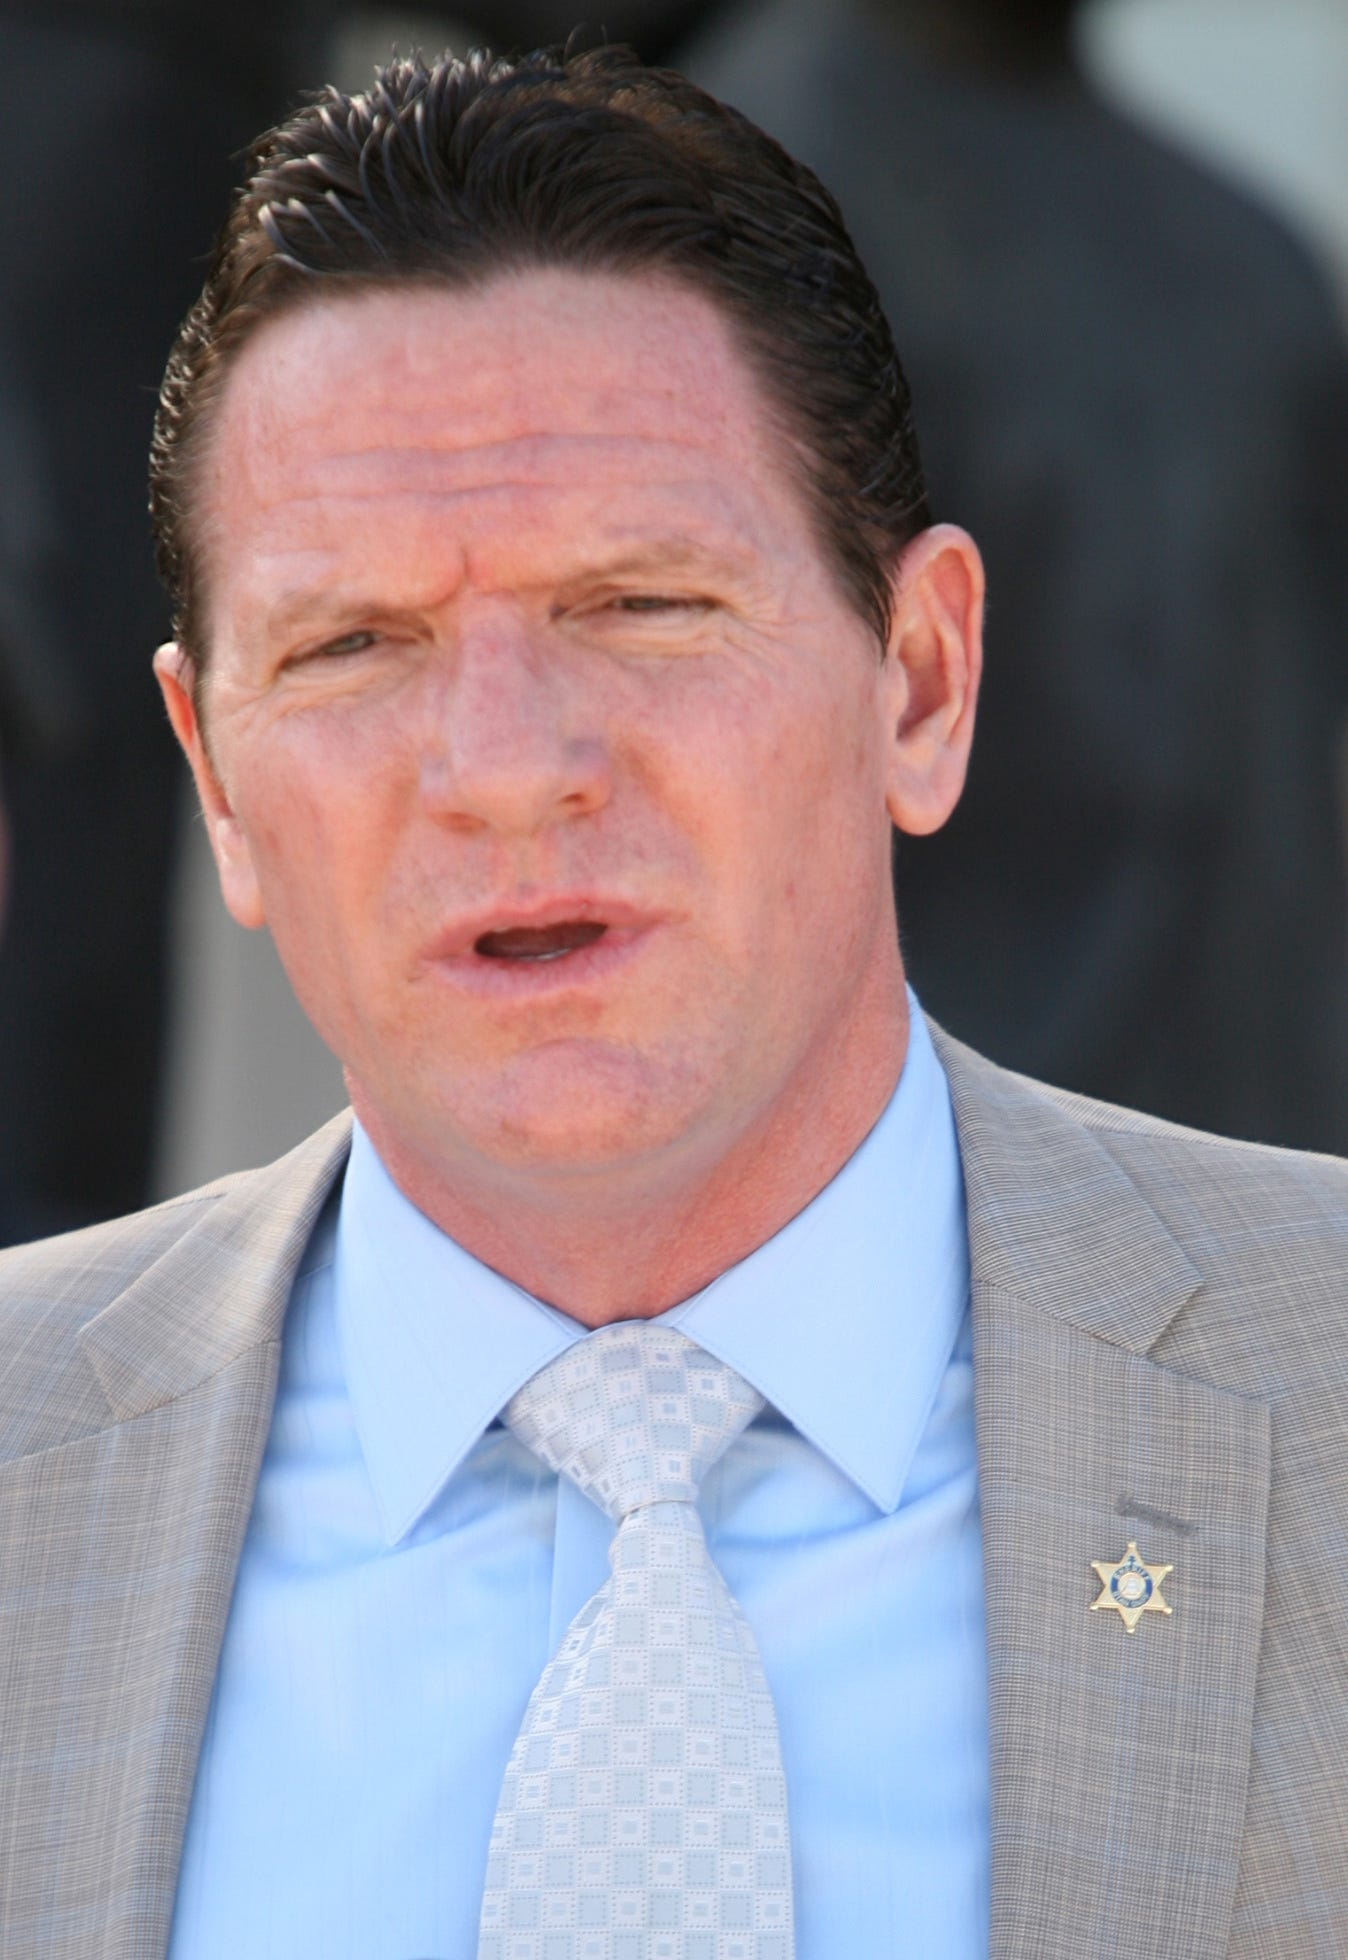 Andrew  Shouse, former Riverside County Sheriff's captain in charge of the Thermal Sheriff's Station. He was terminated in 2017 following accusations of inappropriate relationships with subordinates.